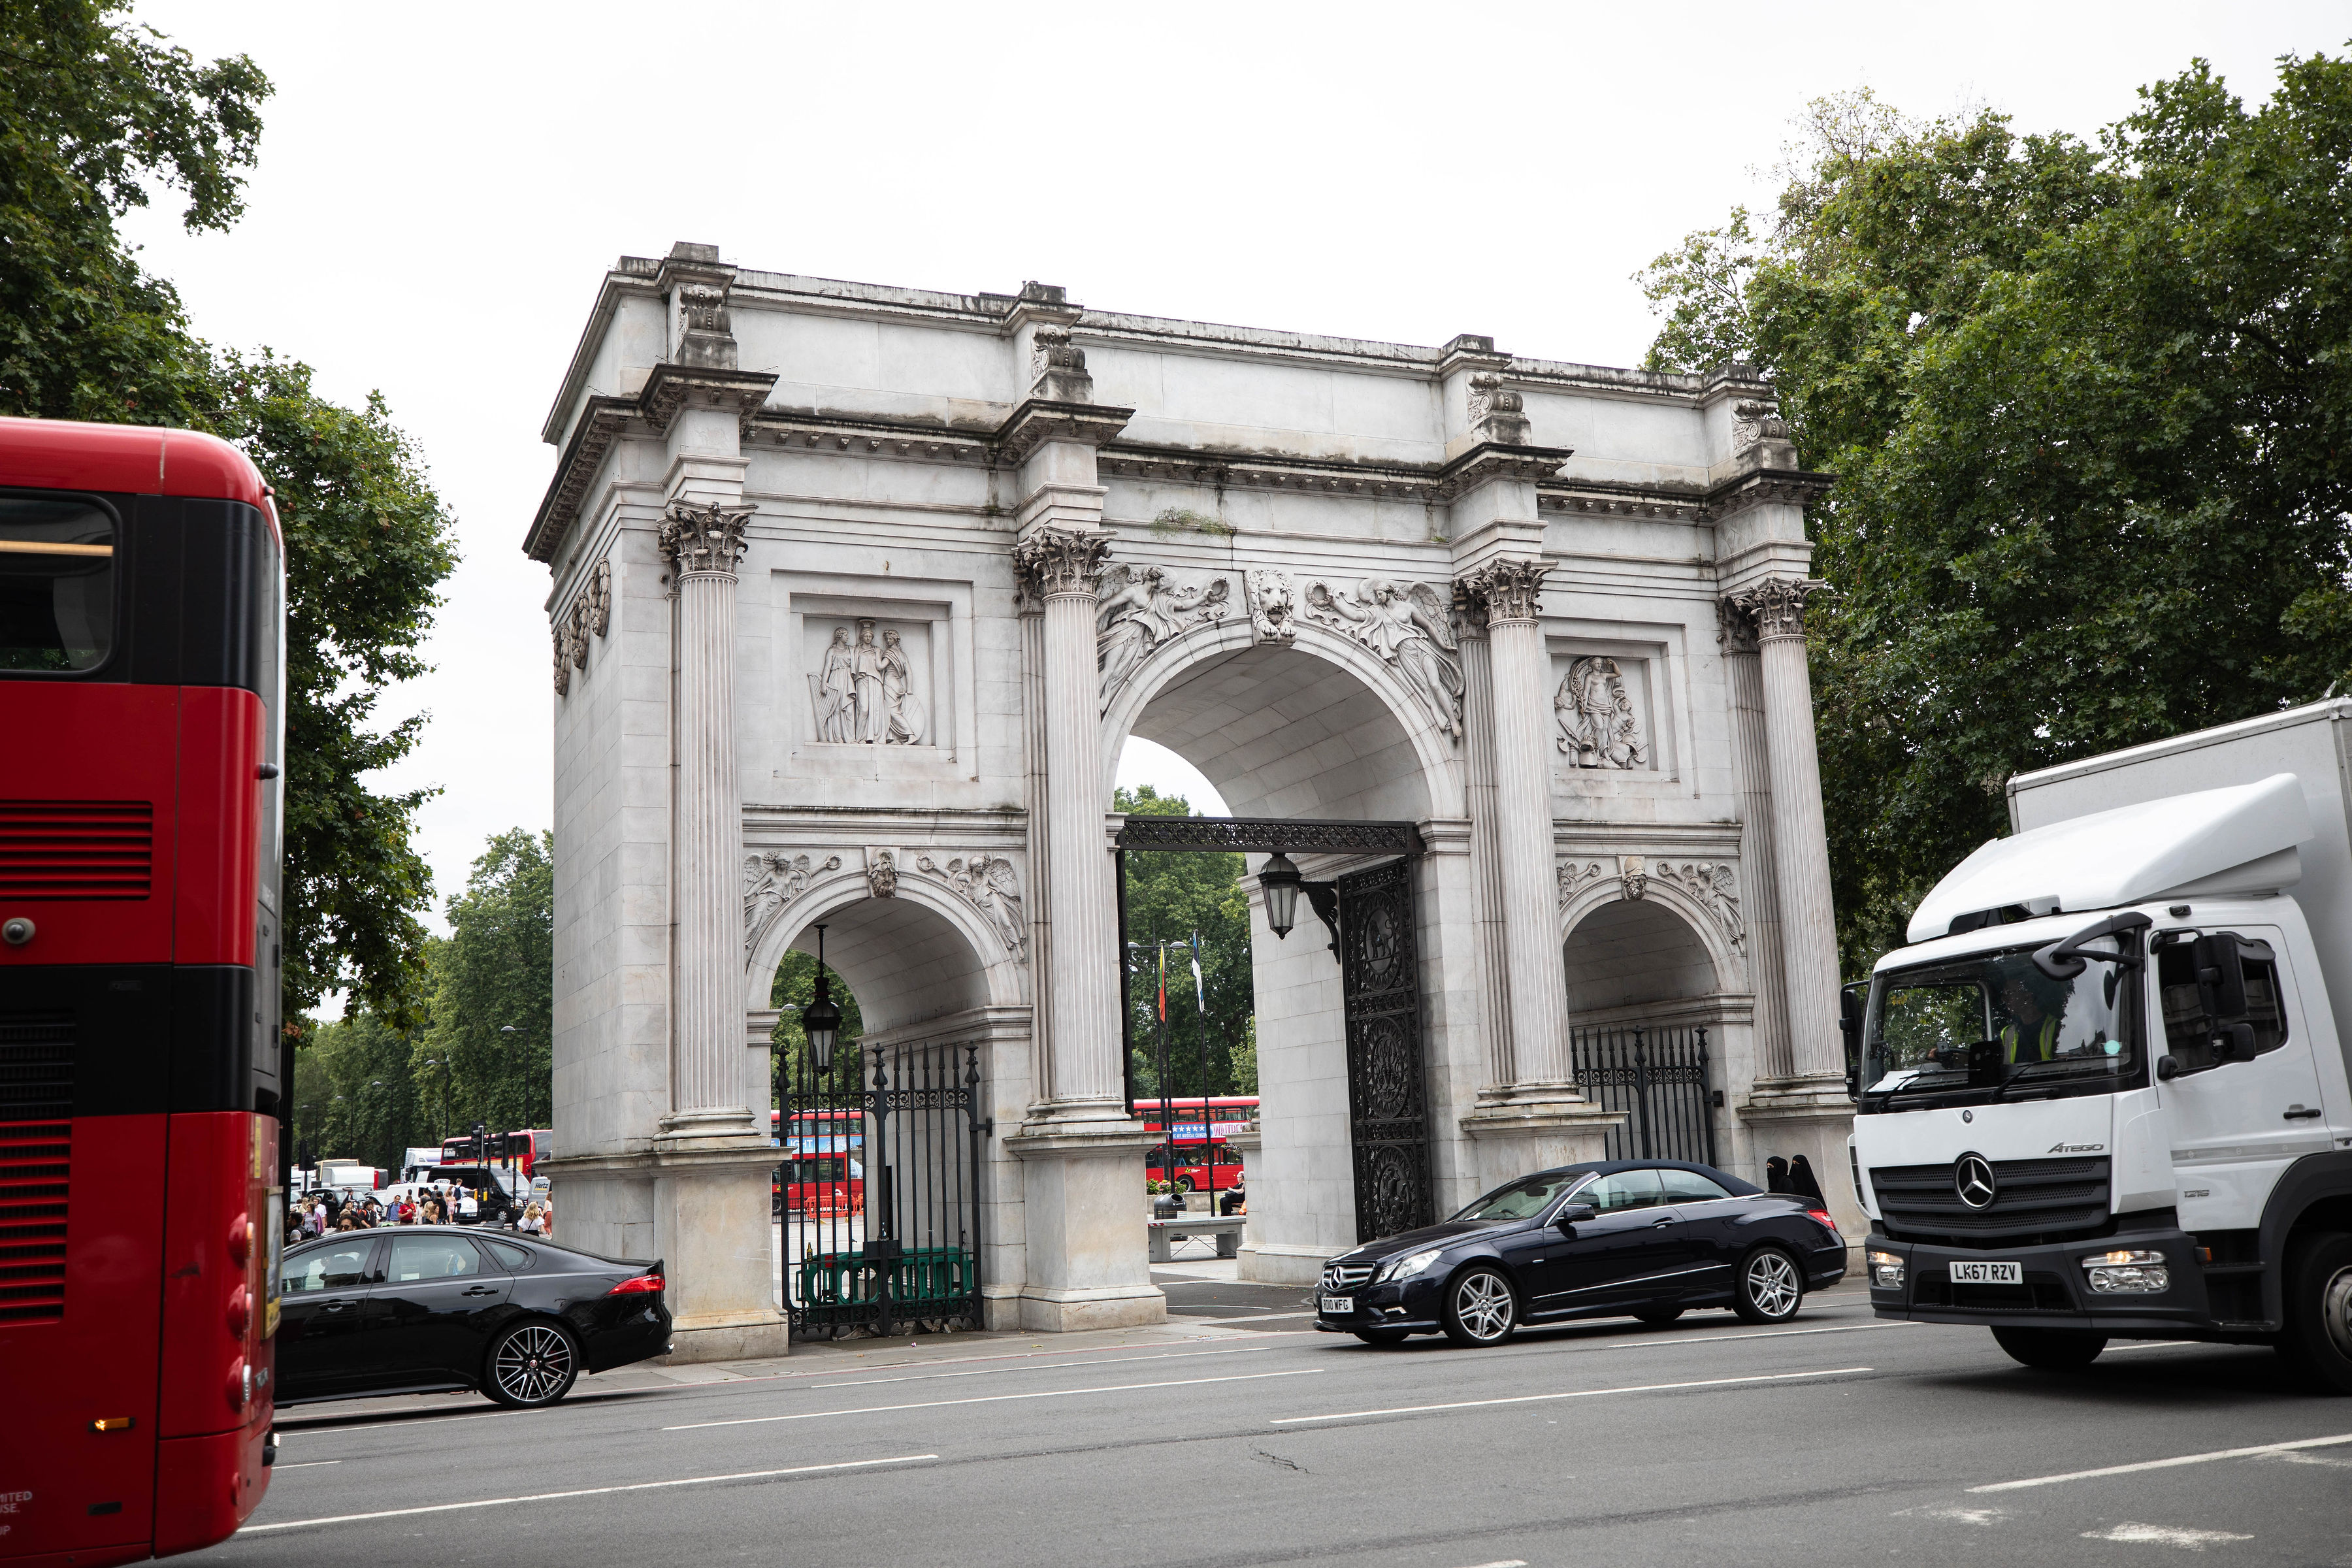 Marble Arch London London City Guide the Official Travel Guide of London, England